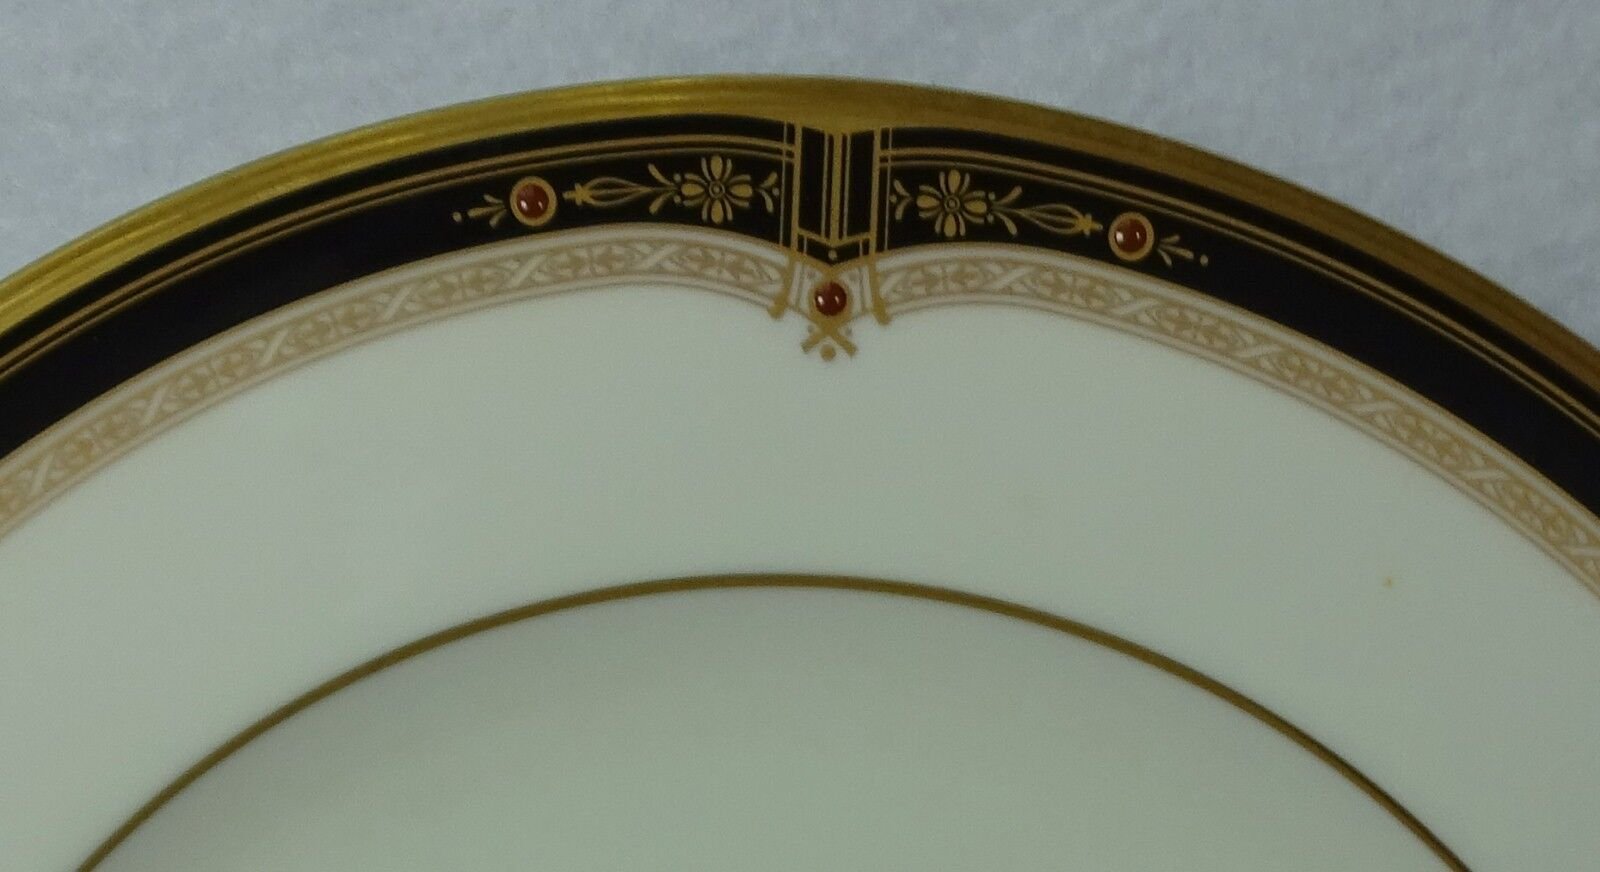 """NORITAKE china GOLD AND SABLE 9758 pattern Salad or Dessert Plate - 8-1/2"""""""